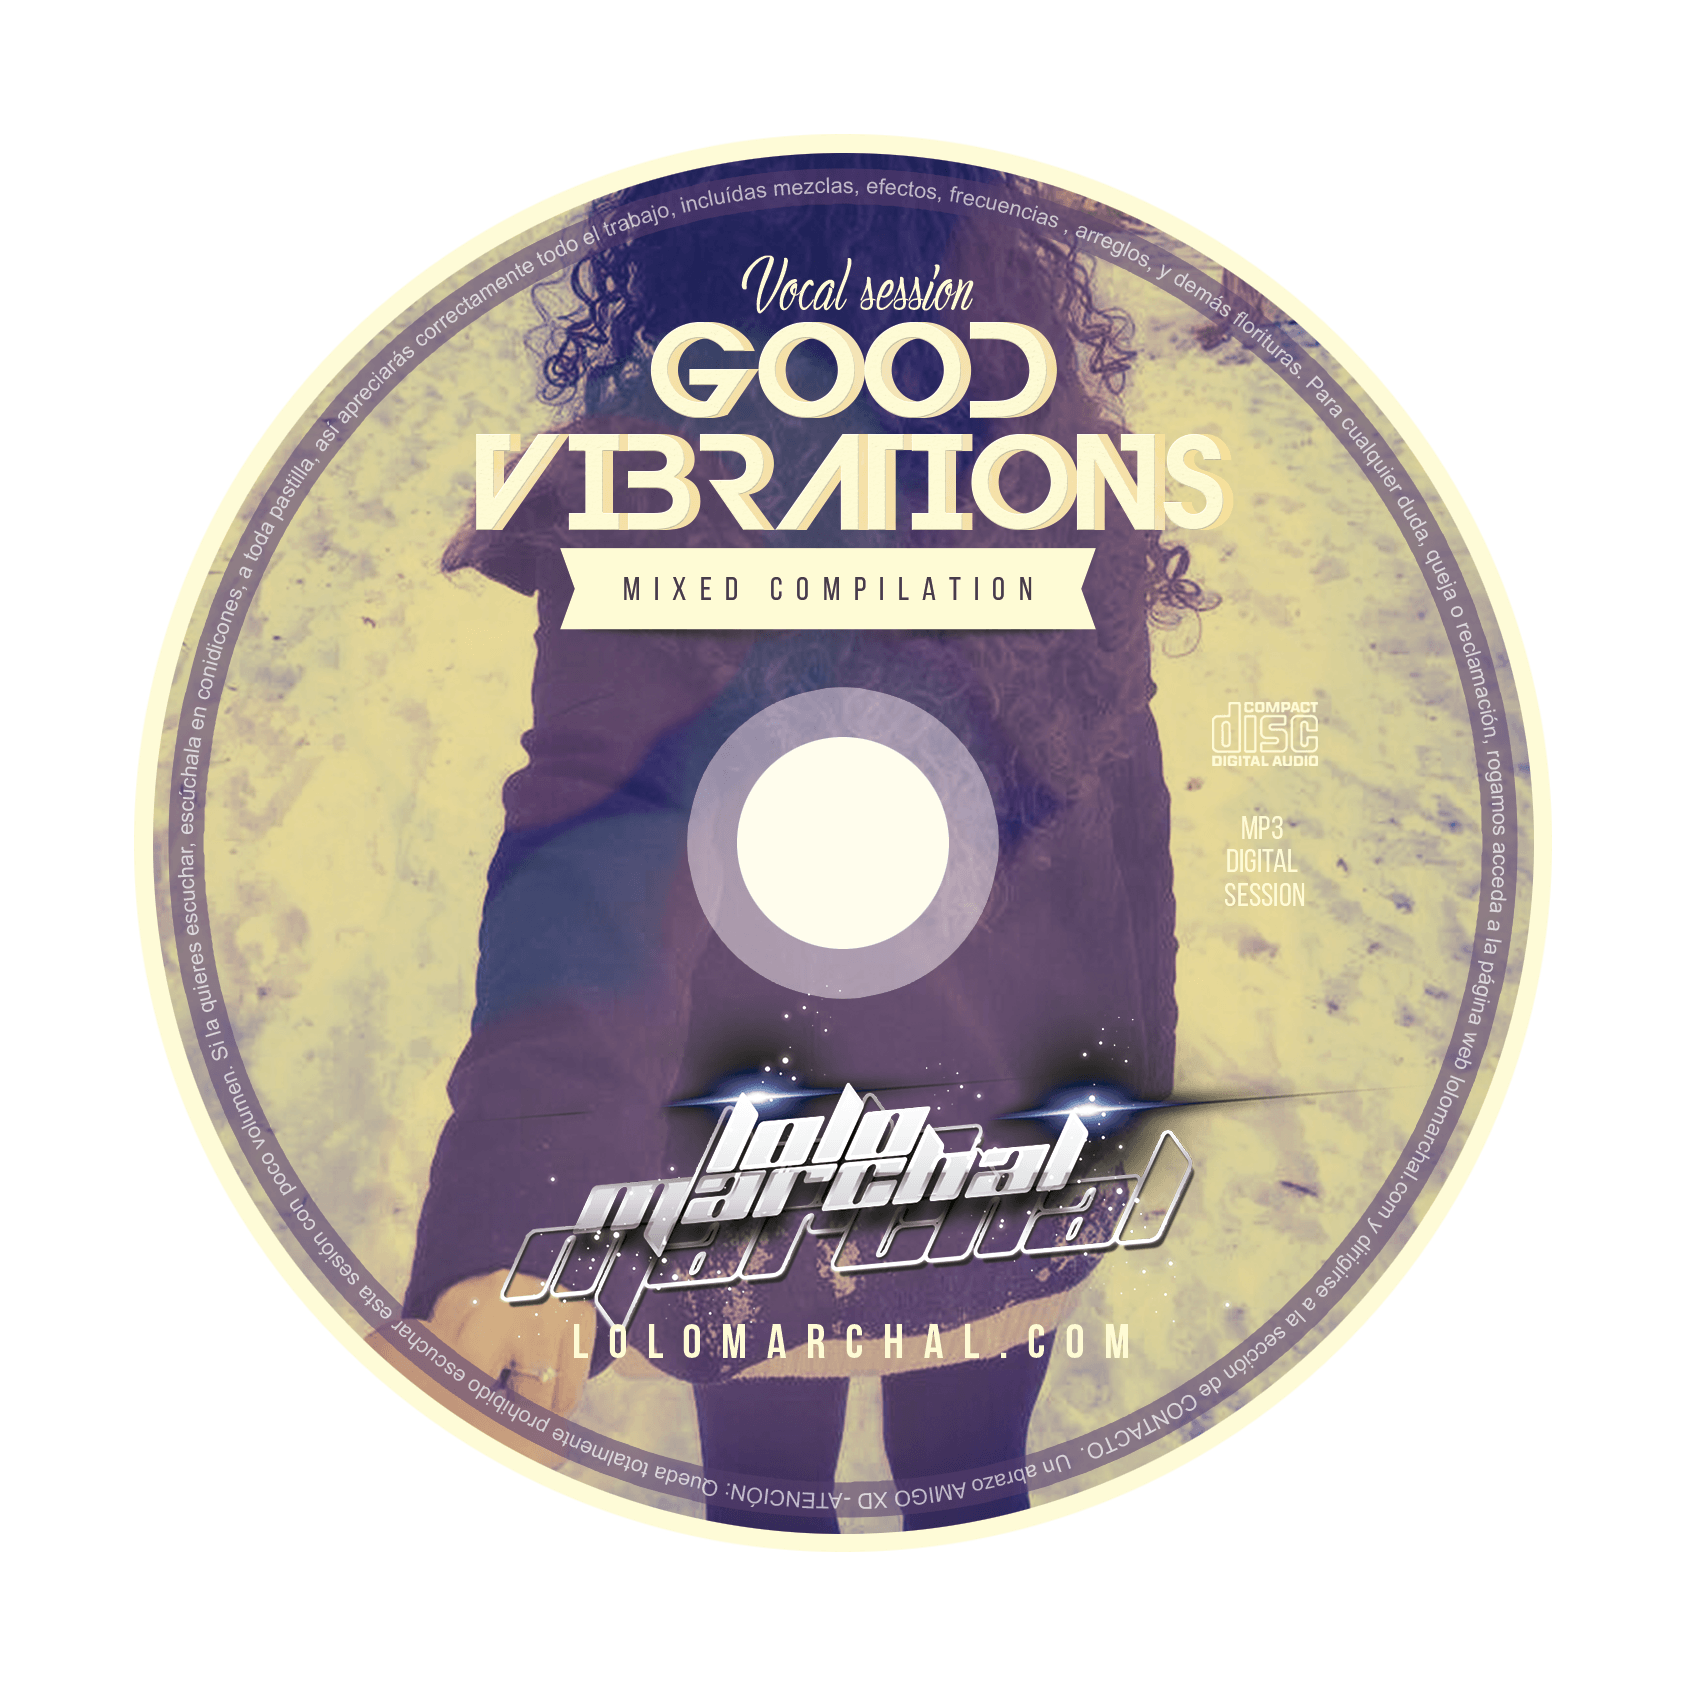 Lolo Marchal - Good Vibrations